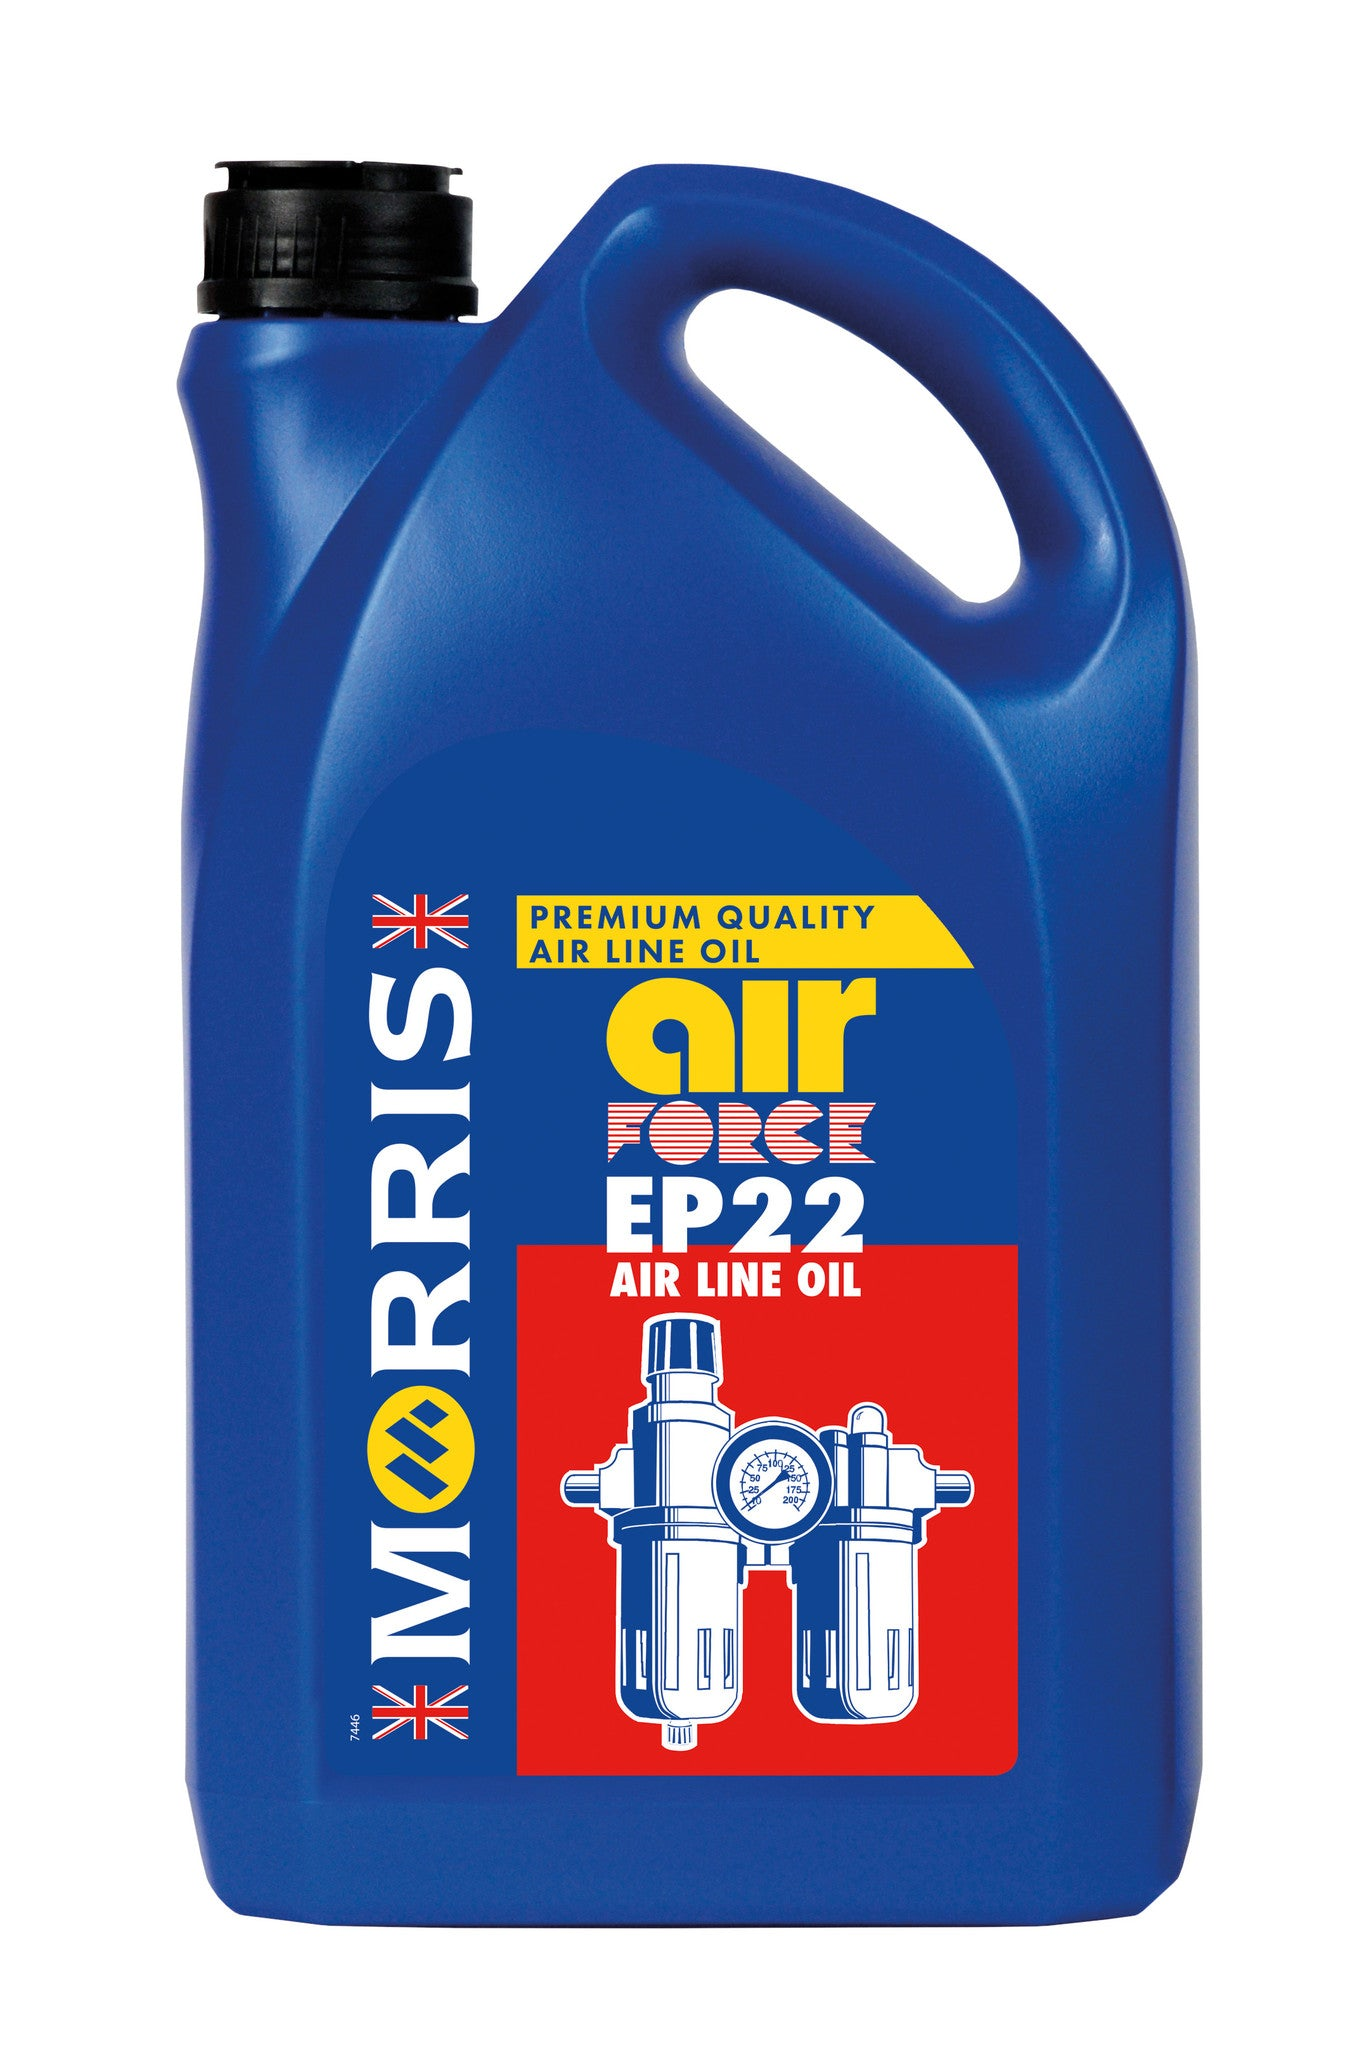 Airforce EP22 Airline Oil